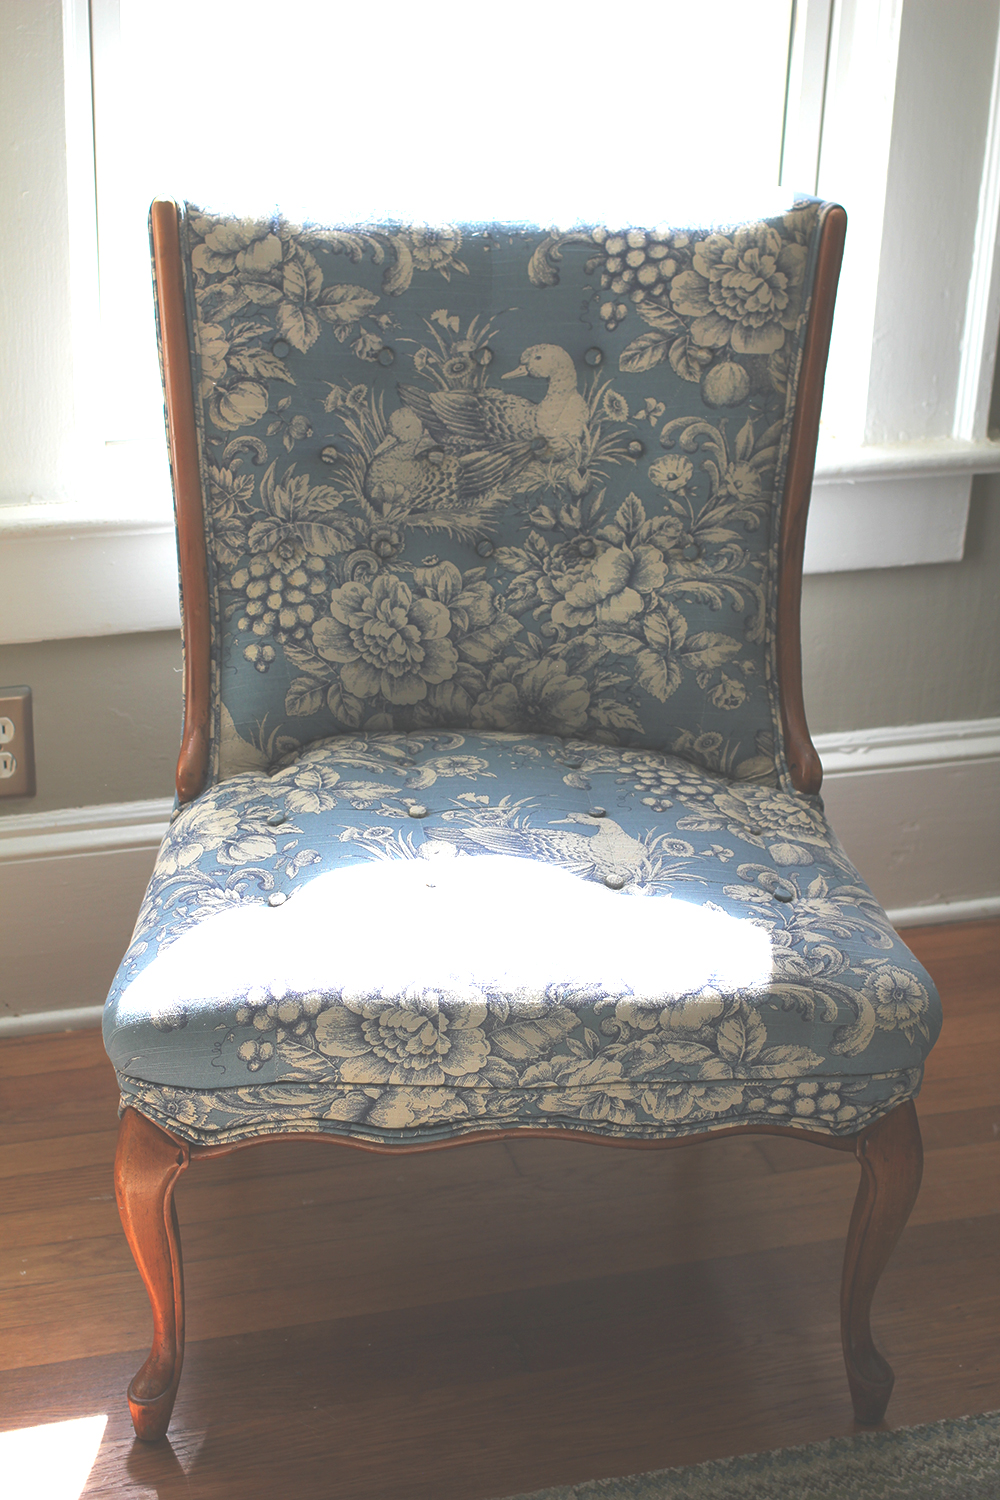 jotorrijos-jo-torrijos-asimplerdesign.com-french-antiques-chair